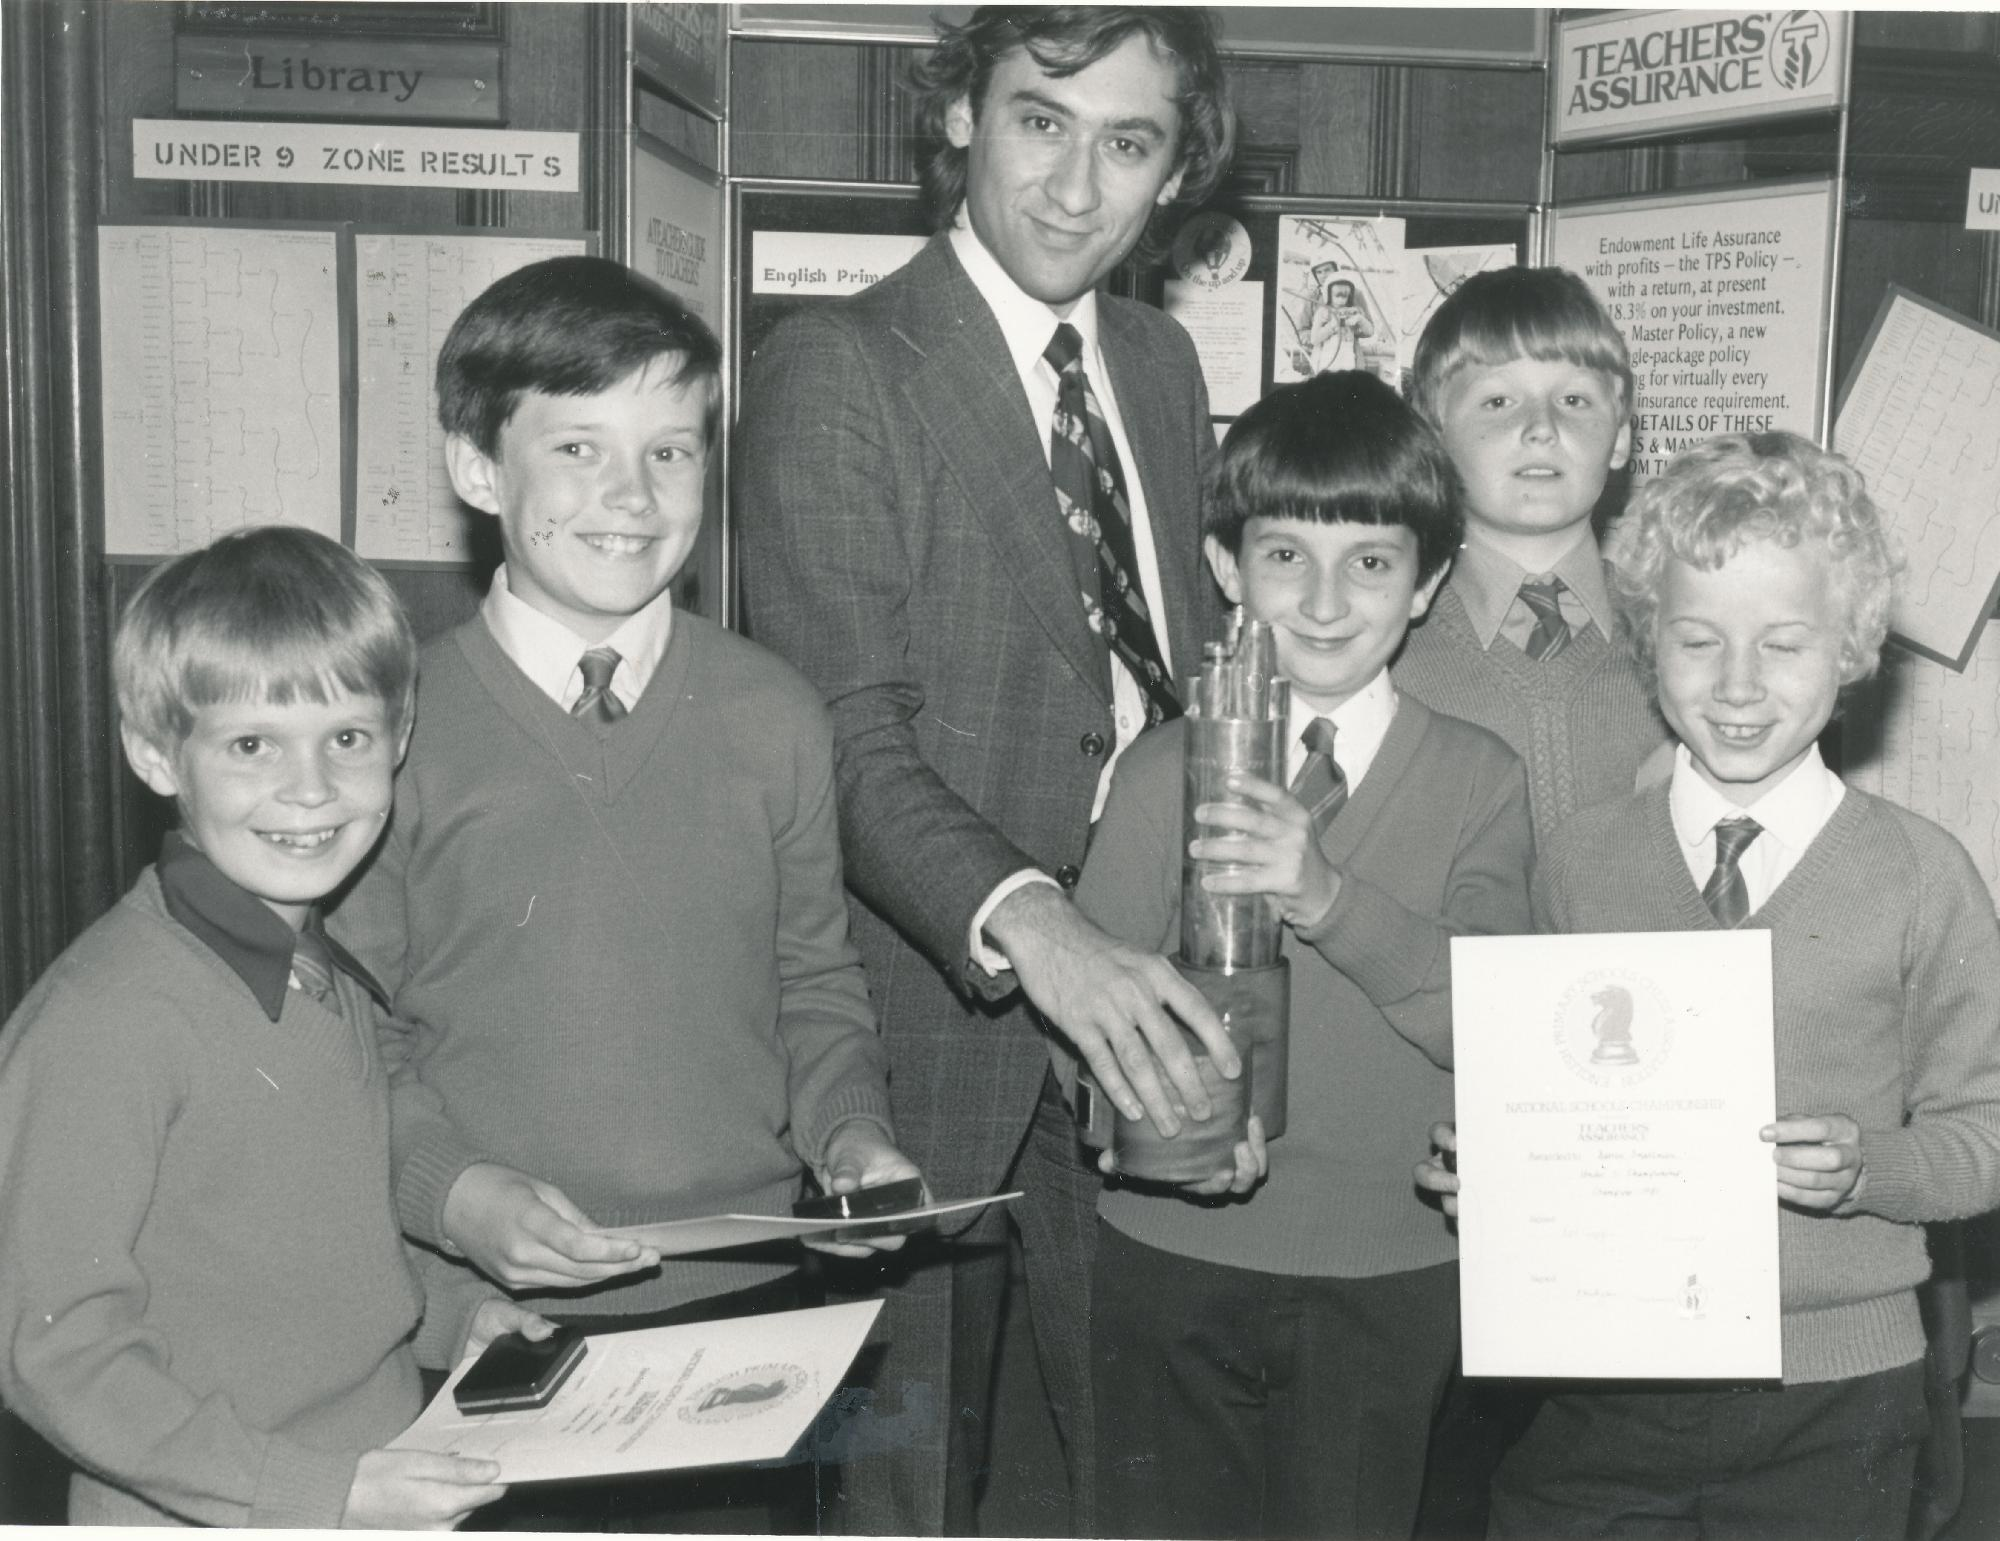 Bill was always a keen supporter of junior chess. Here at the Teachers Assurance National Schools Championships in 1980